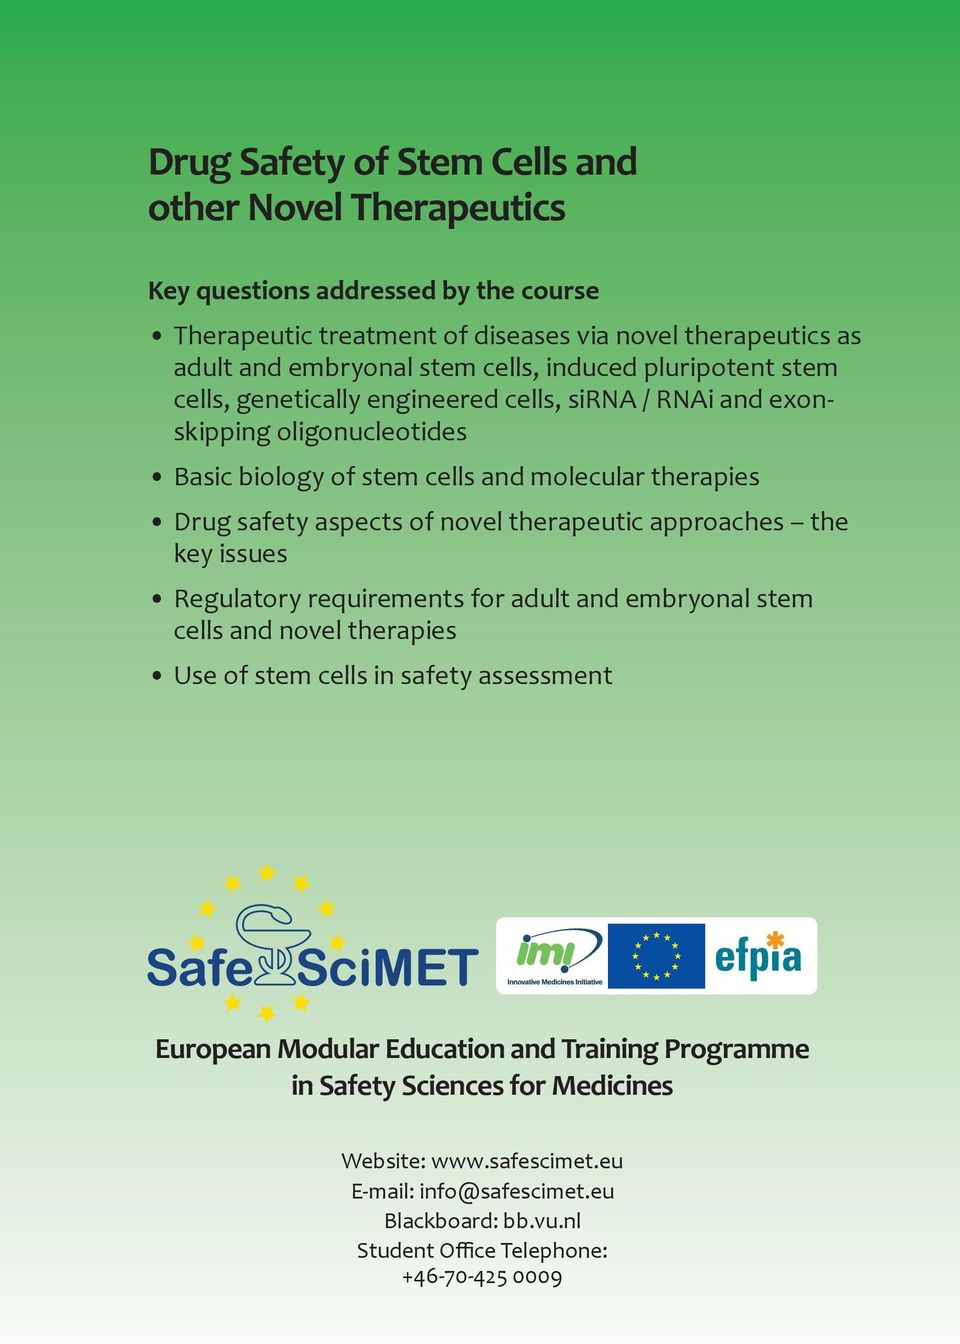 aspects of novel therapeutic approaches the key issues Regulatory requirements for adult and embryonal stem cells and novel therapies Use of stem cells in safety assessment European